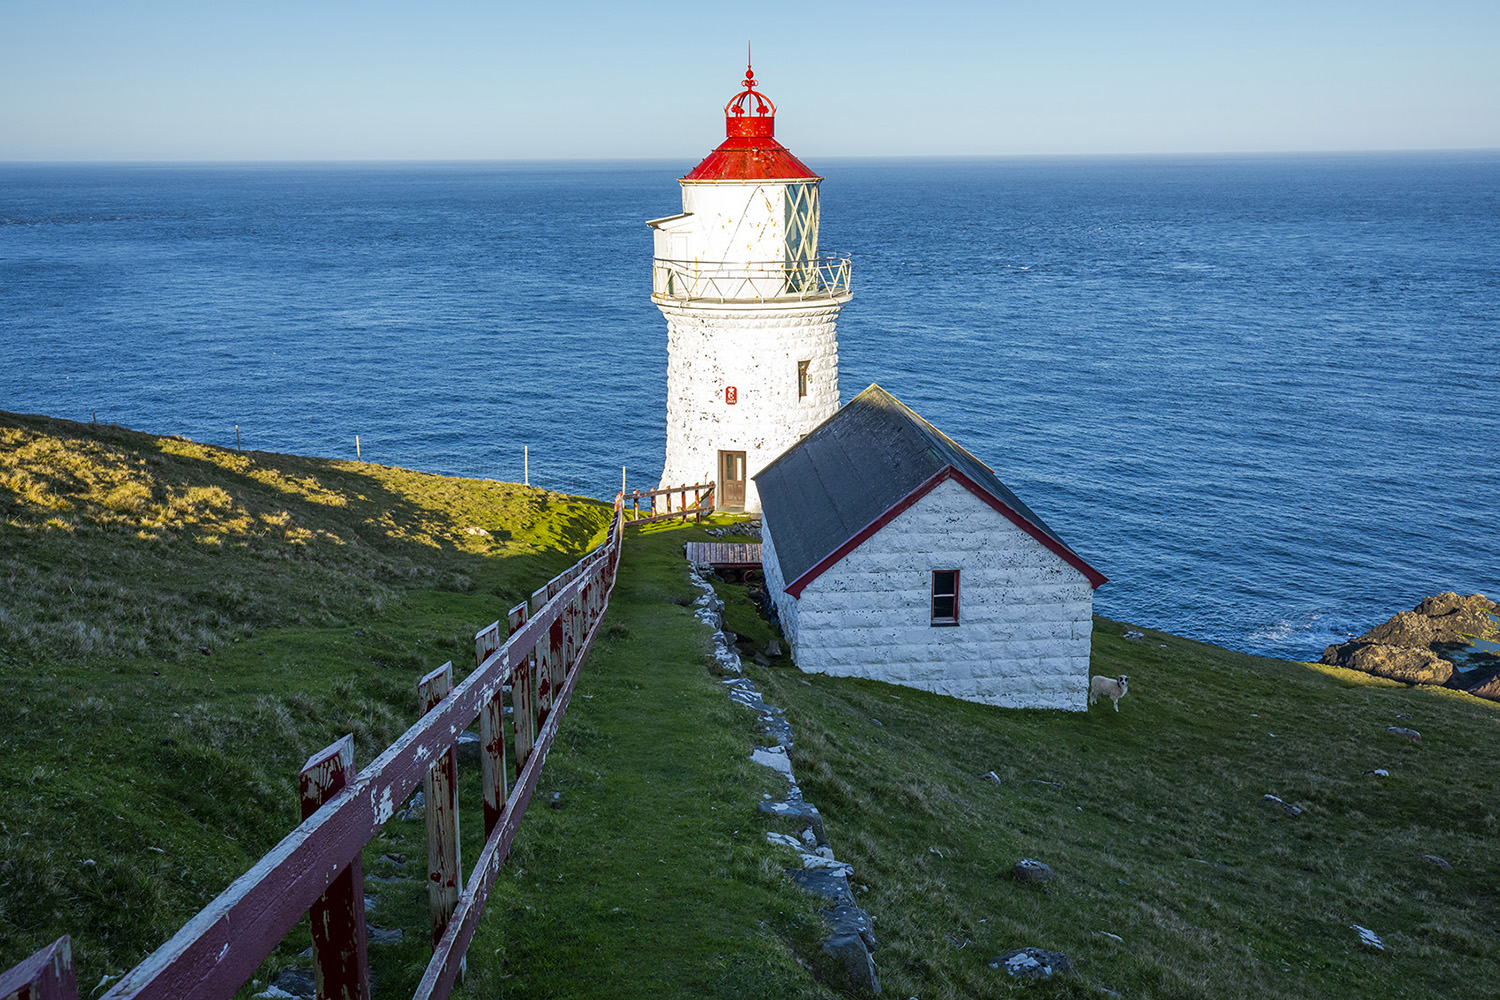 The lighthouse on Nólsoy island, Faroe Islands